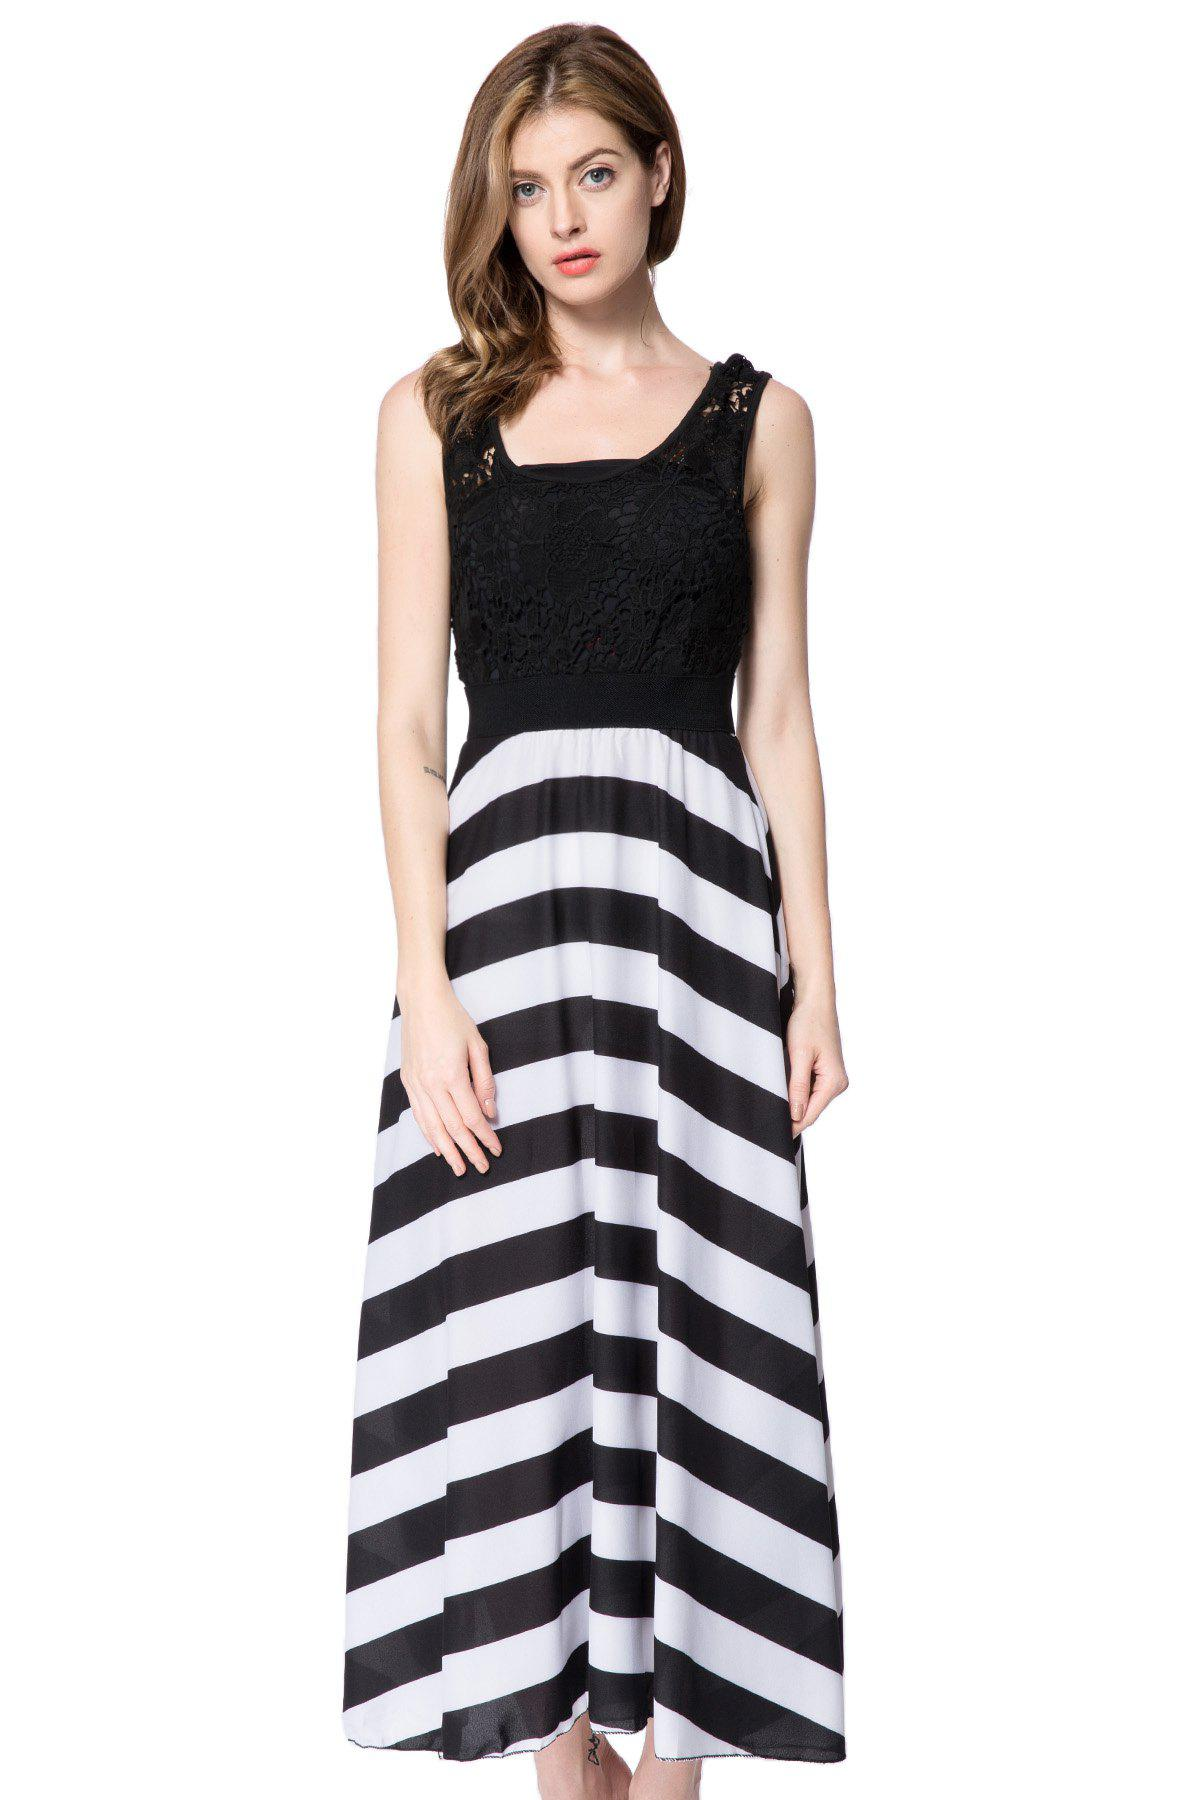 Lace Embellished Hollow Out Design Sleeveless Scoop Neck Striped Dress - WHITE/BLACK XL